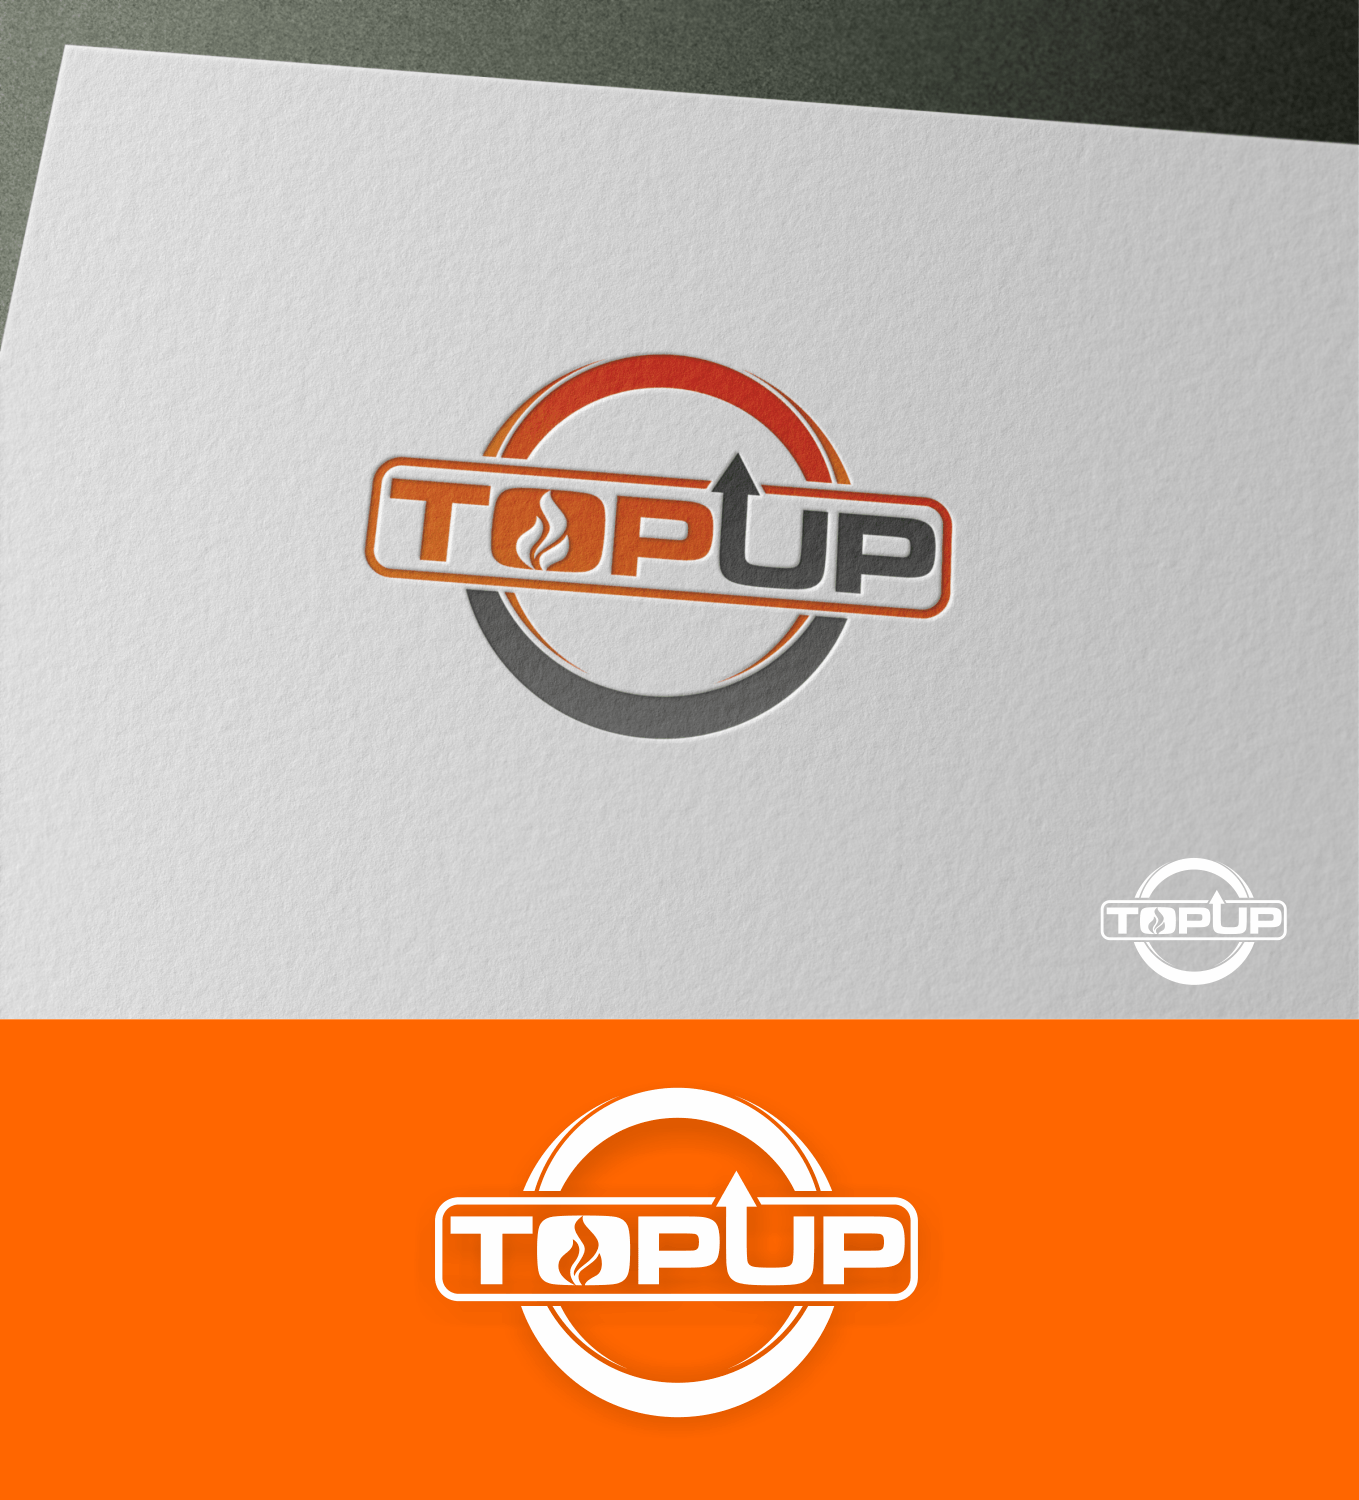 Gas Station Logo - Modern, Bold, Gas Station Logo Design for Top Up by eugenv | Design ...